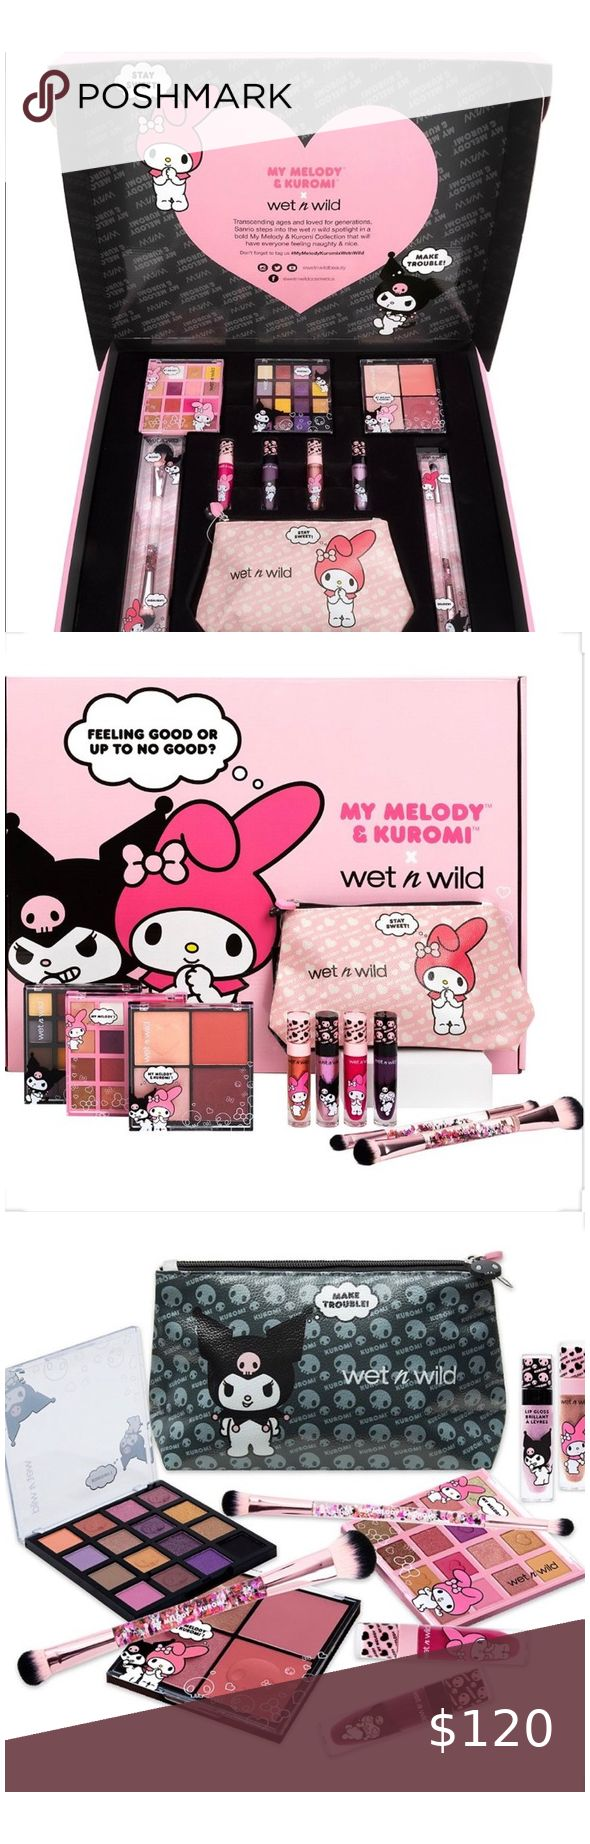 makeup face brush wet n wild 🎀New PR Set My Melody